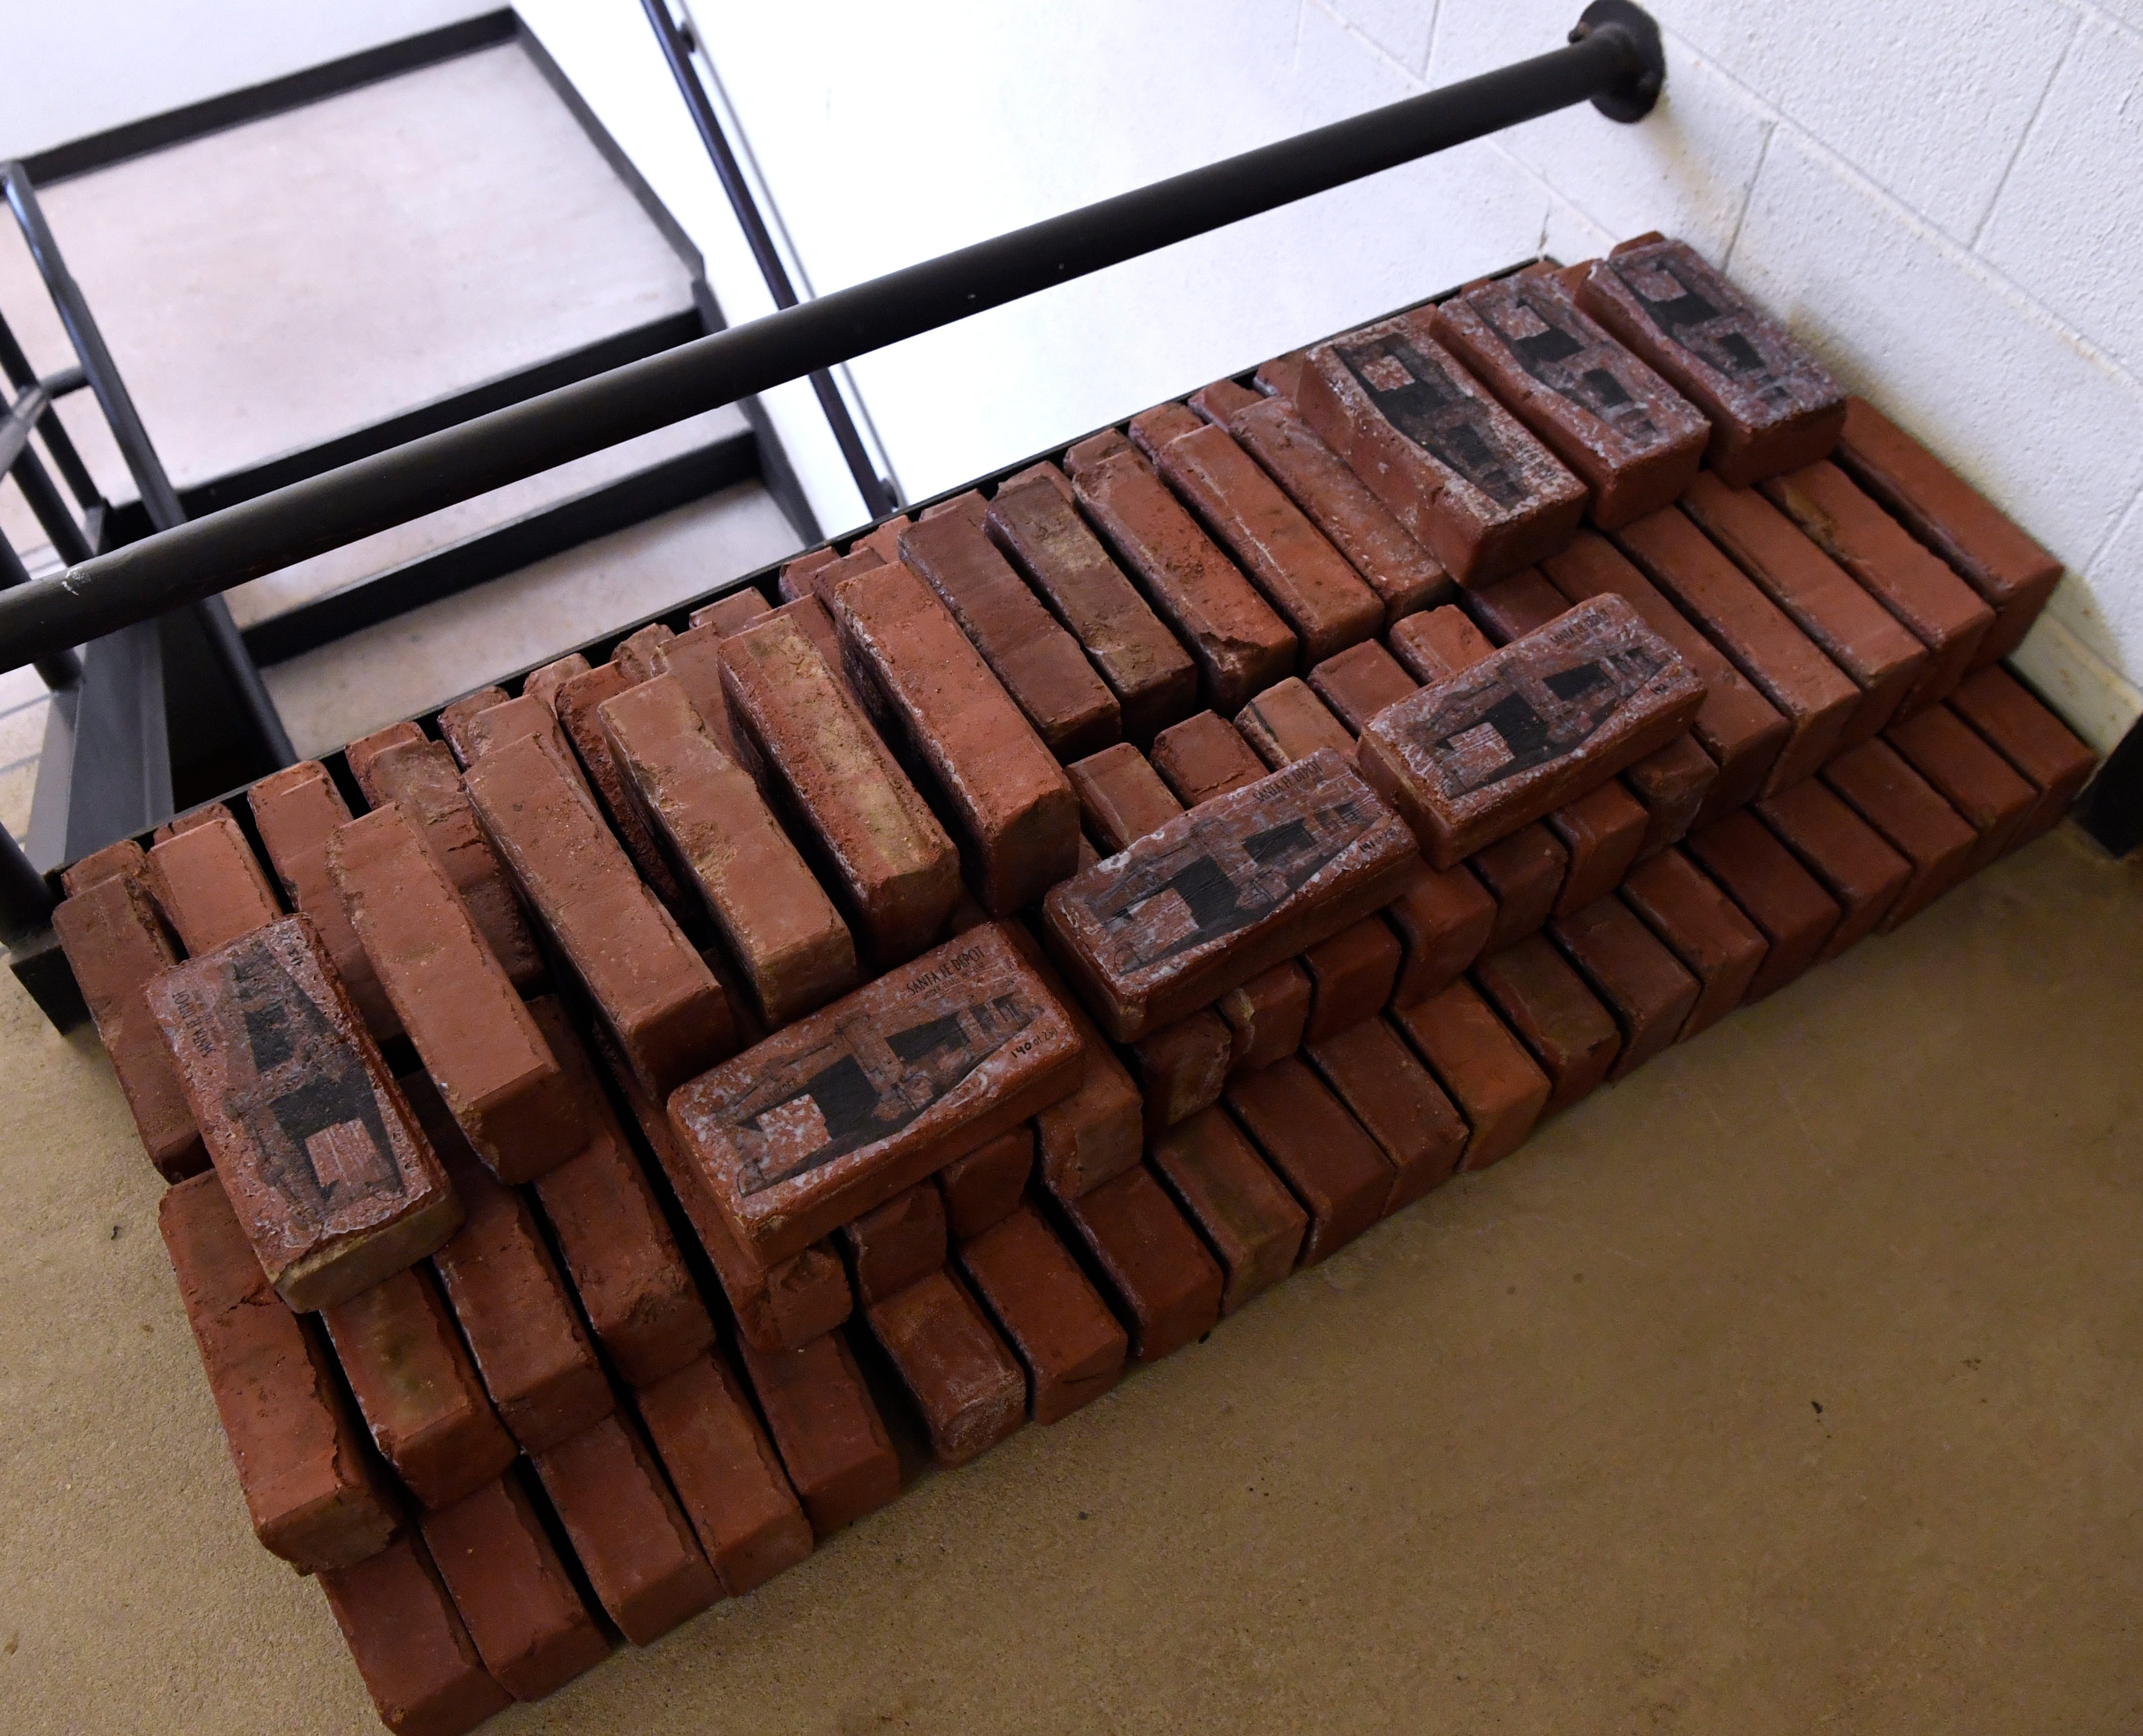 Commemorative bricks from the Snyder Depot are stacked in the Scurry County Museum on Wednesday. The historical building was demolished in November 2017, the bricks are from the platform that surrounded it.